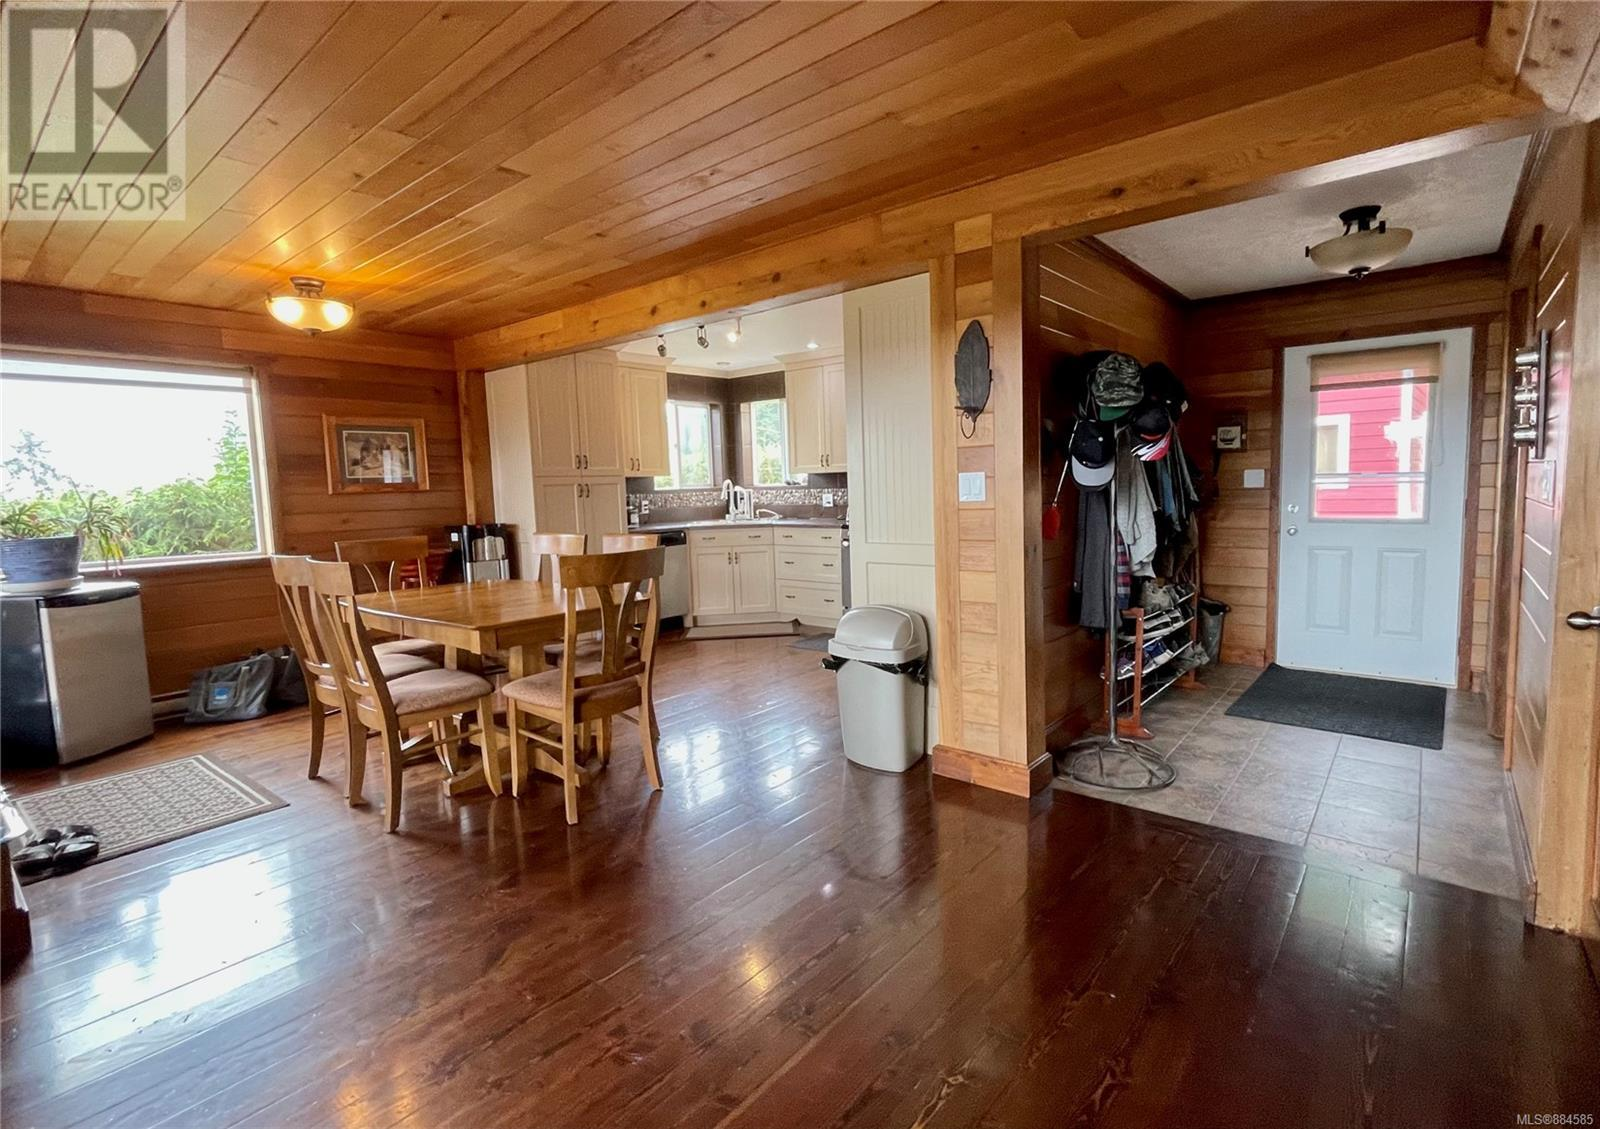 MLS® #884585 - Ucluelet House For sale Image #8